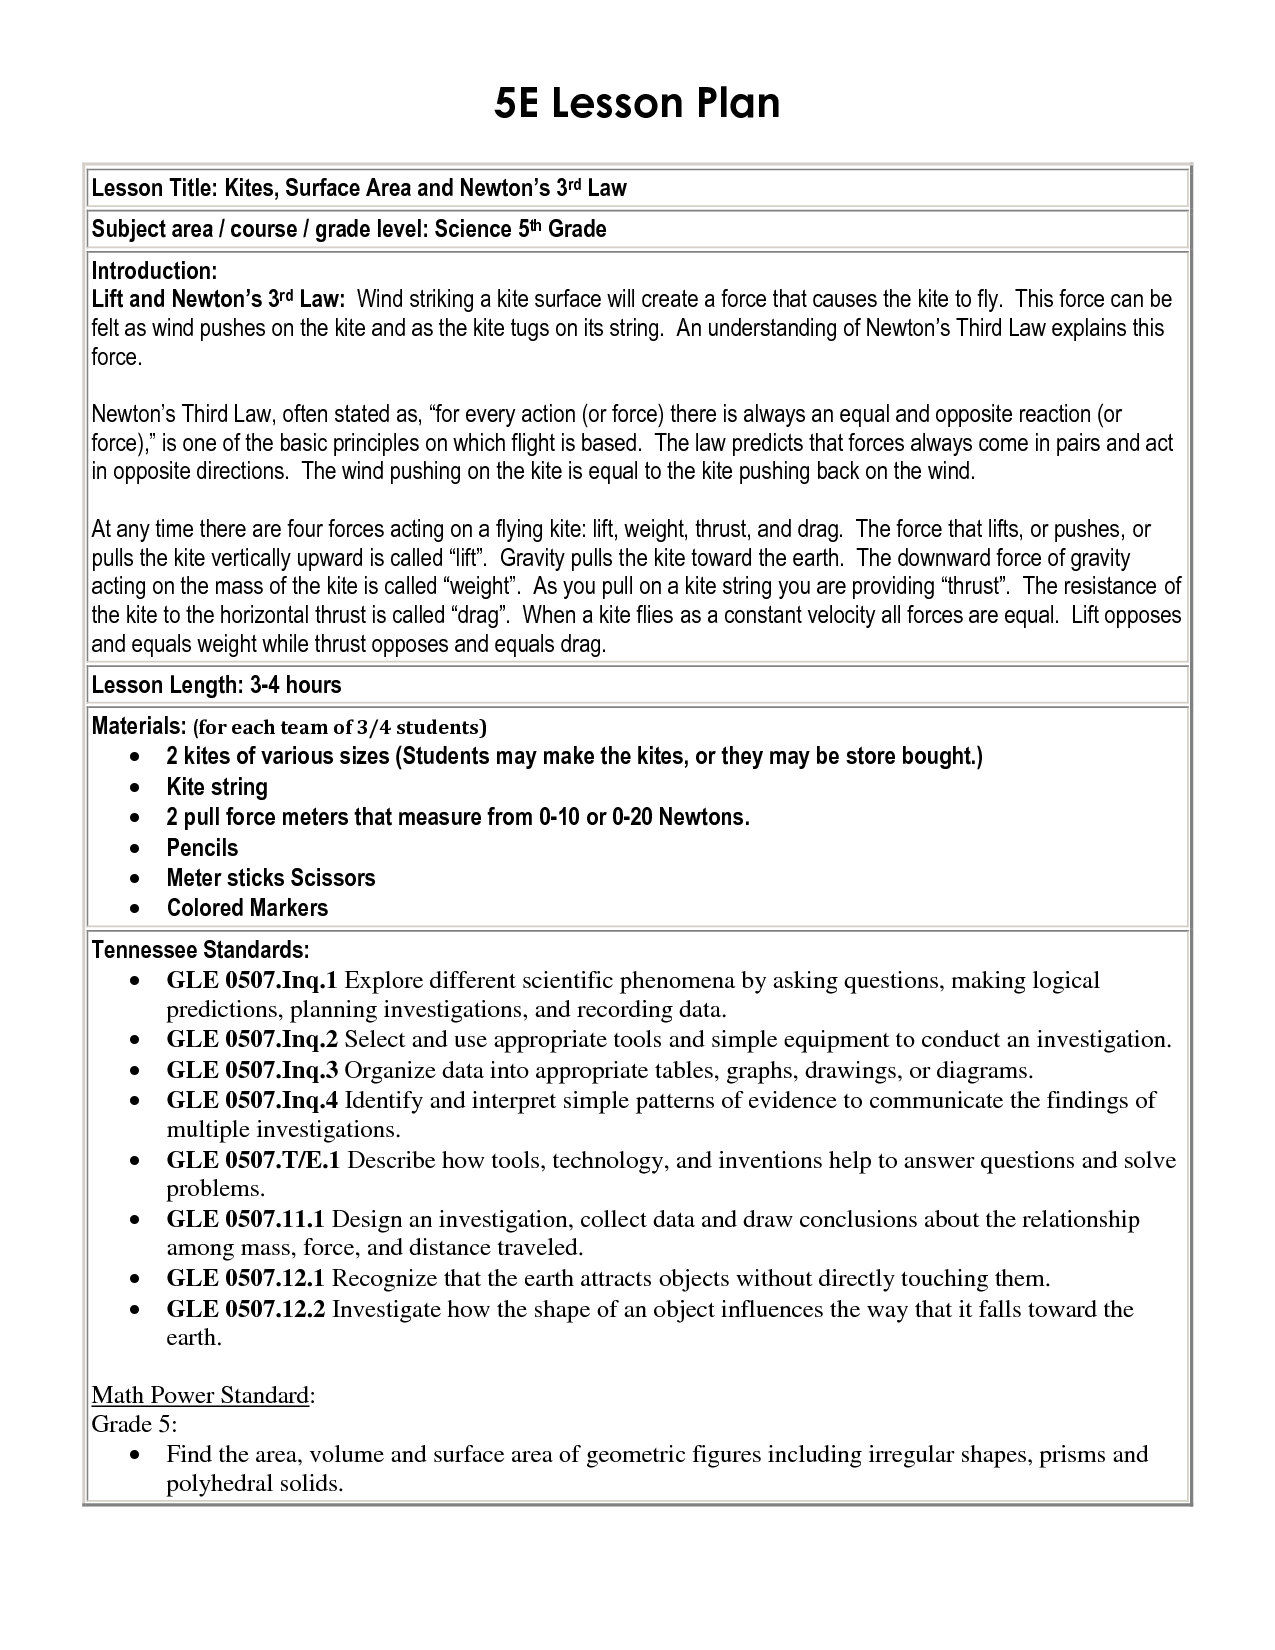 5 e lesson plan template 5e lesson plan template for 5 e model lesson plan template